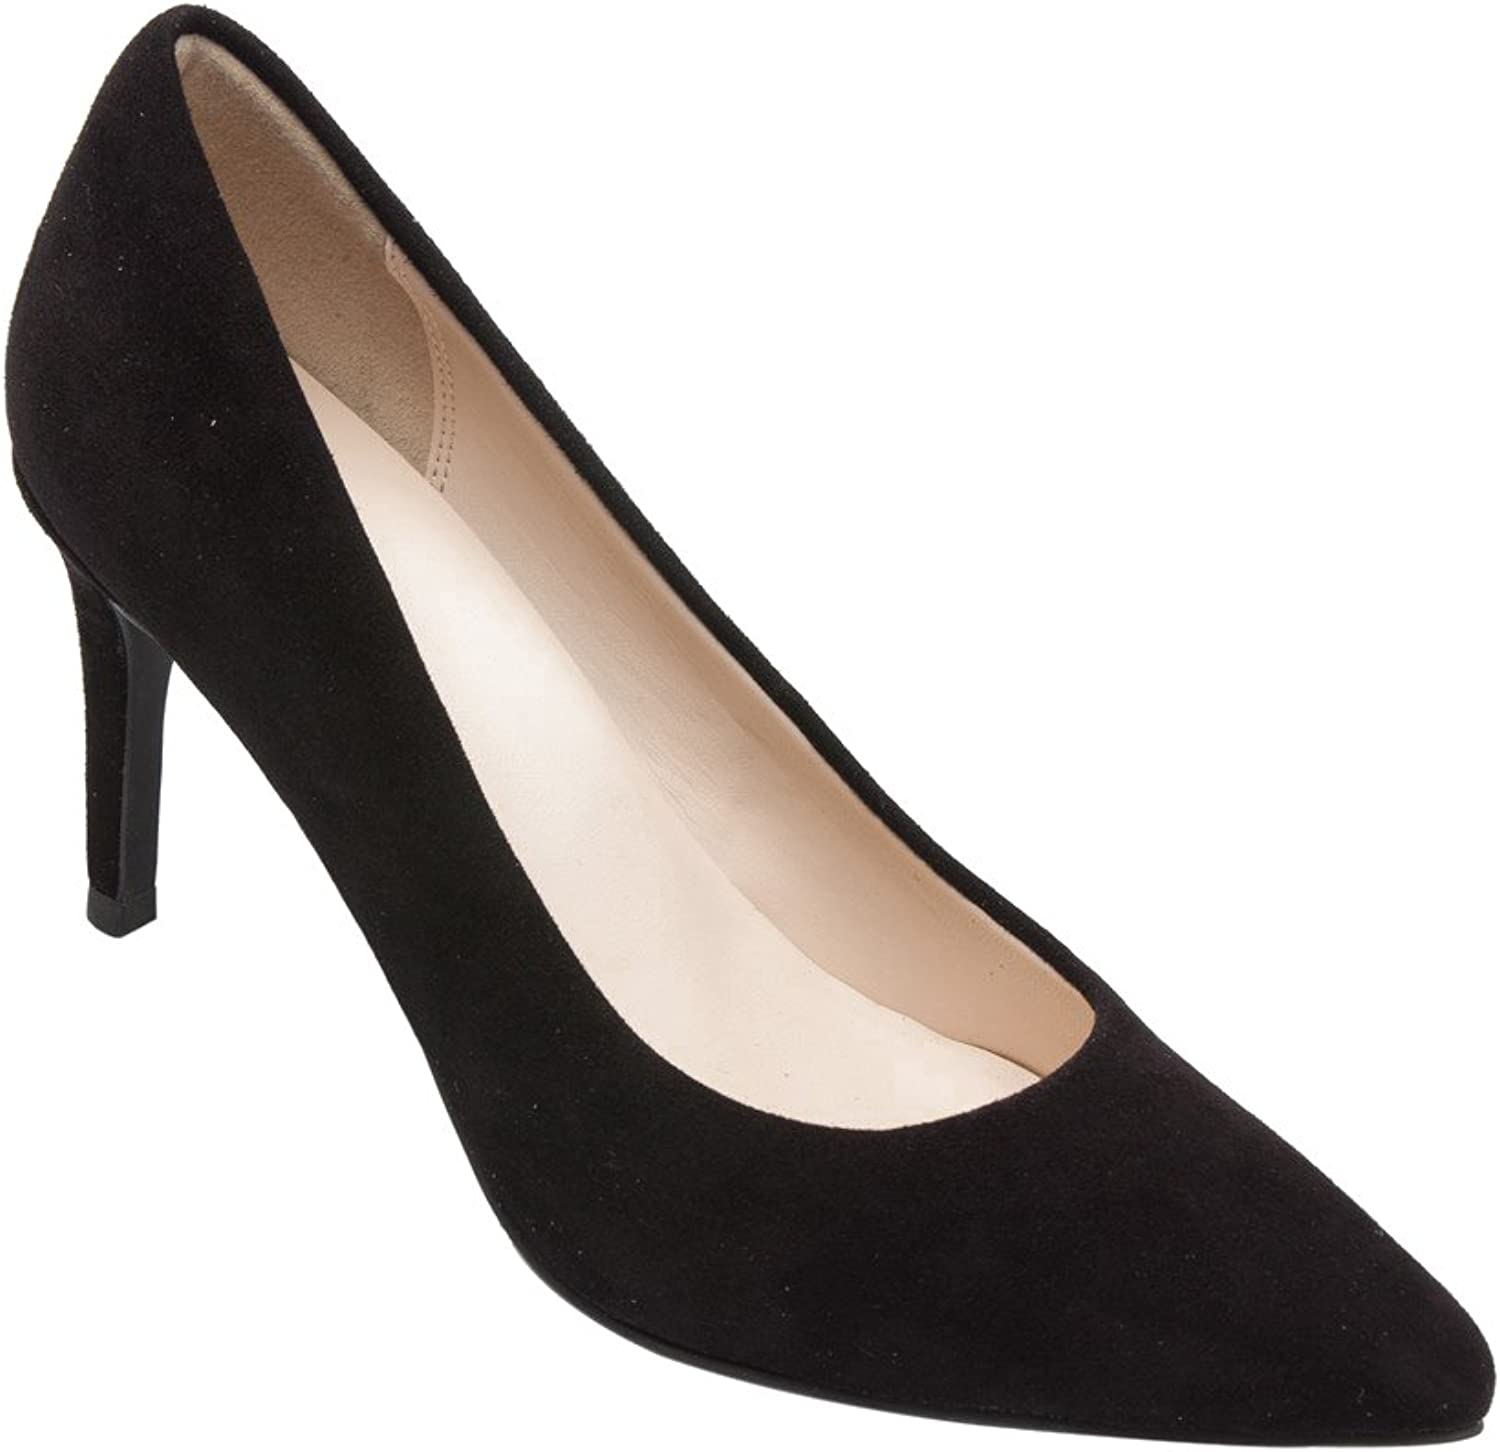 PIC PAY Lucia - Women's Pointy Toe Pumps - Elegant Suede Leather Stiletto High Heel shoes Black Suede 7.5M